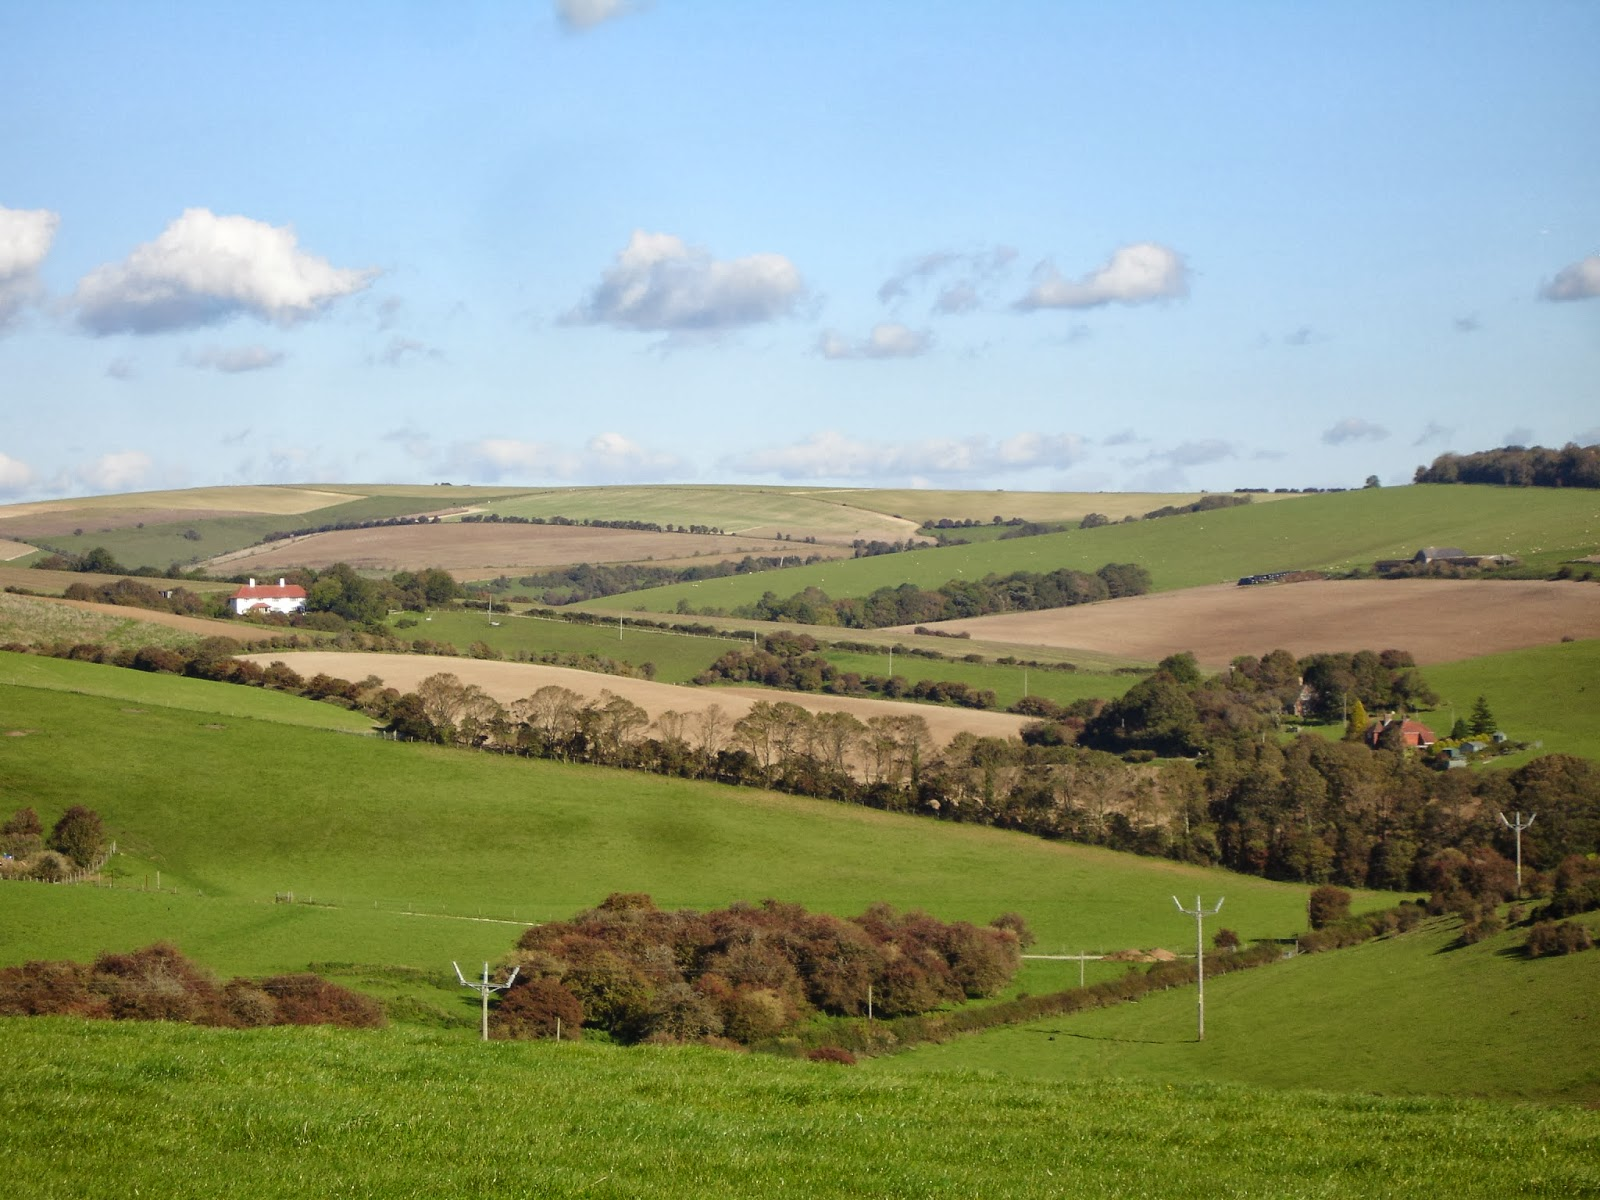 The Standean valley with Standean Farm